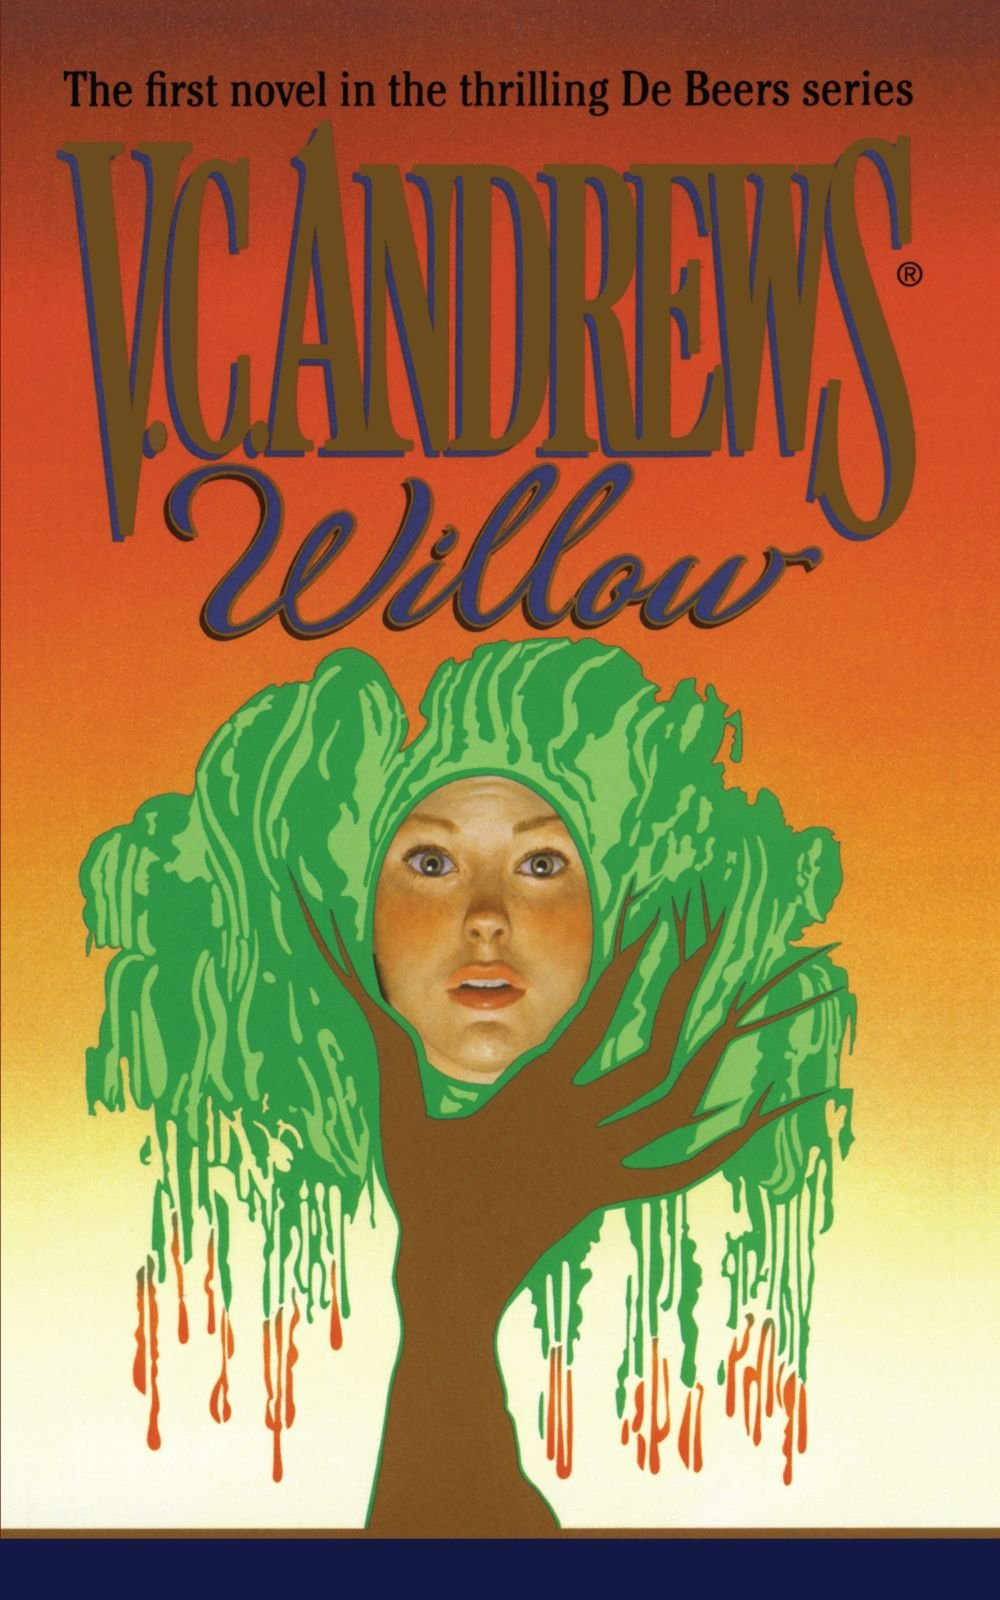 Image result for willow vc andrews